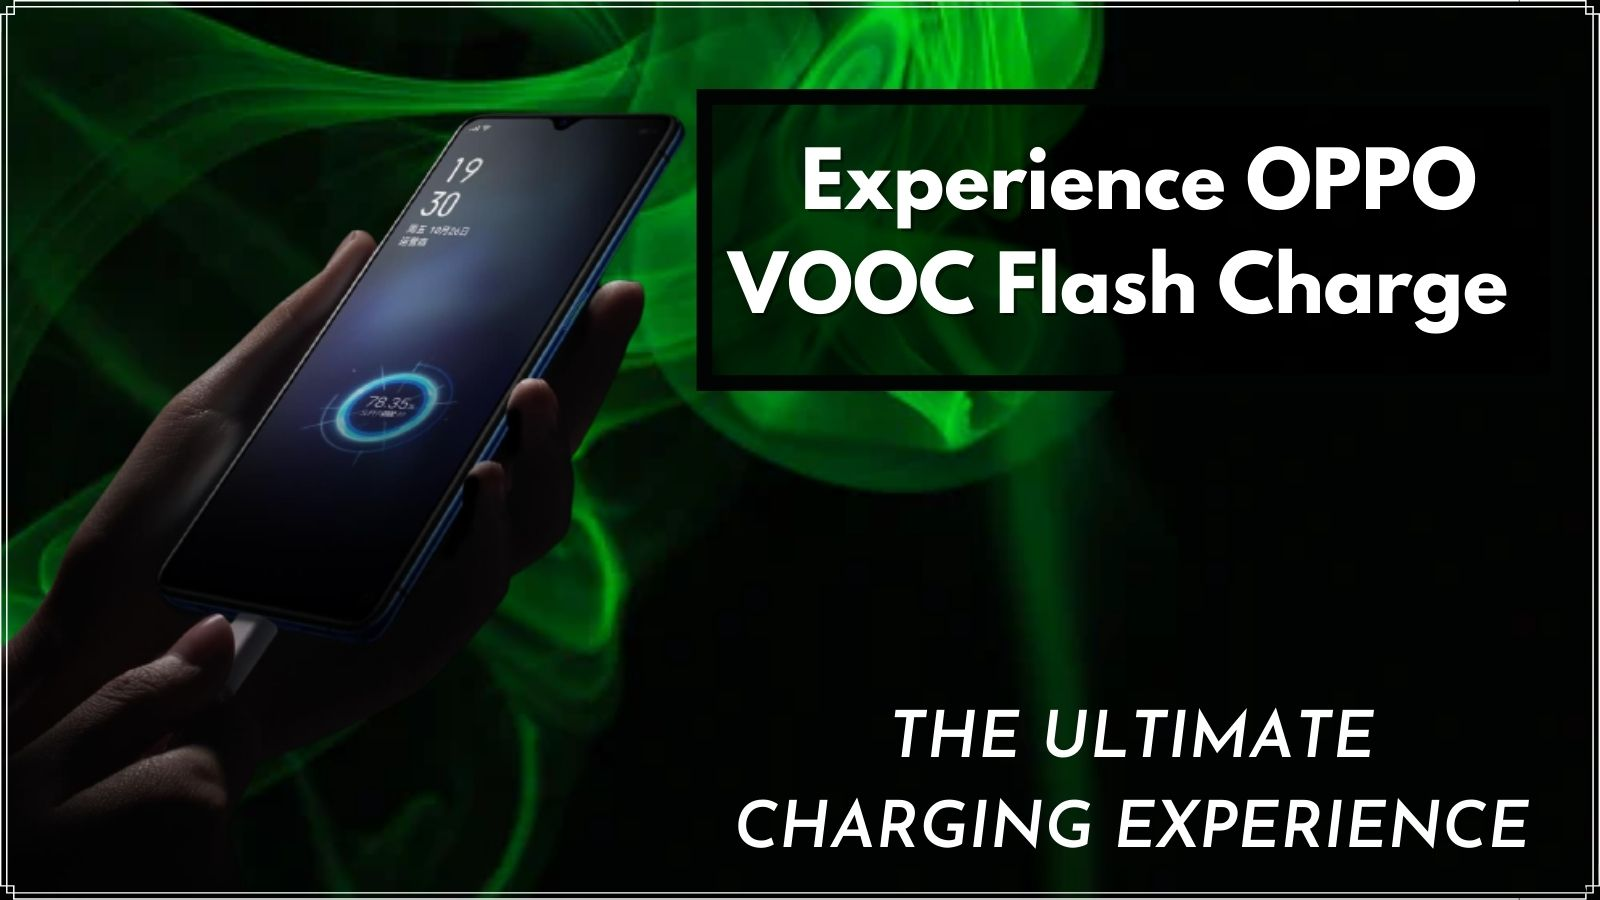 Experience OPPO VOOC Flash Charge